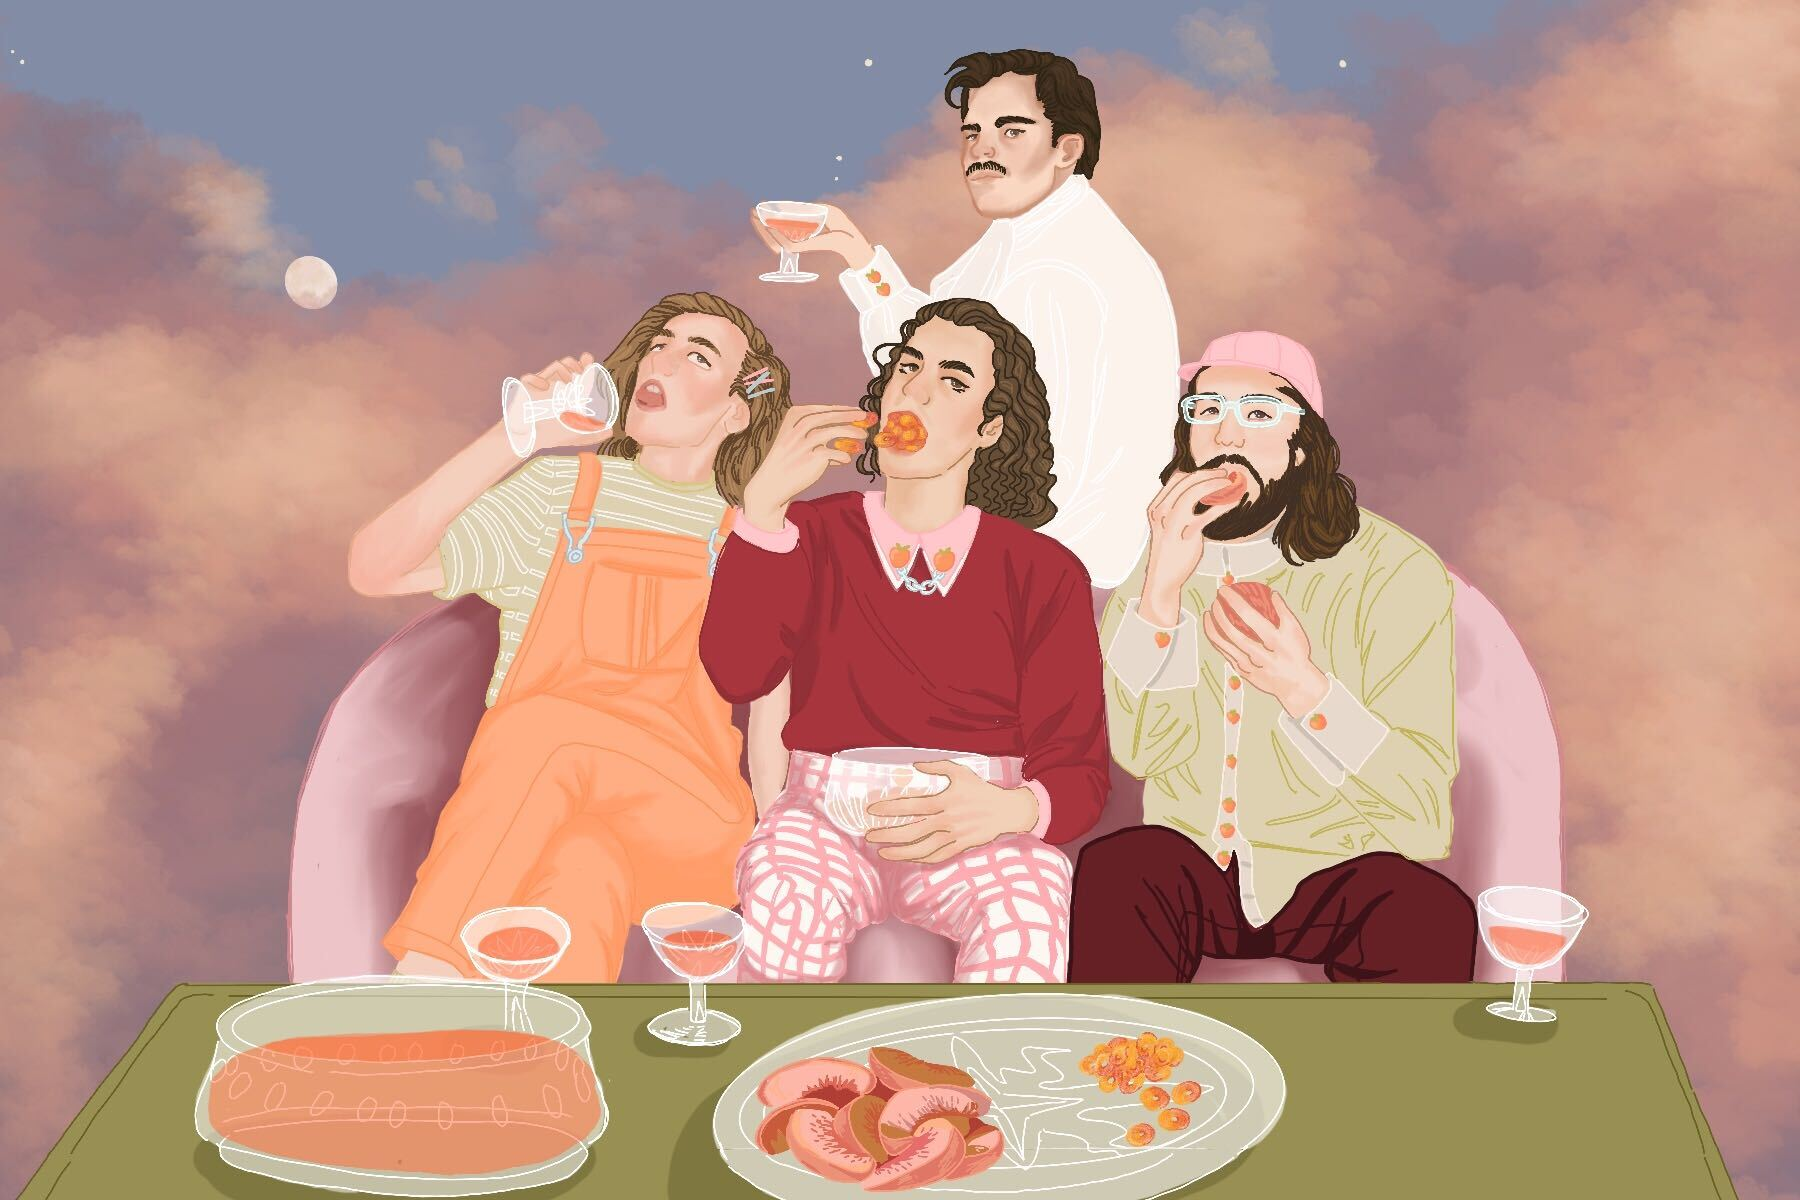 An illustration of the members of Peach Pit